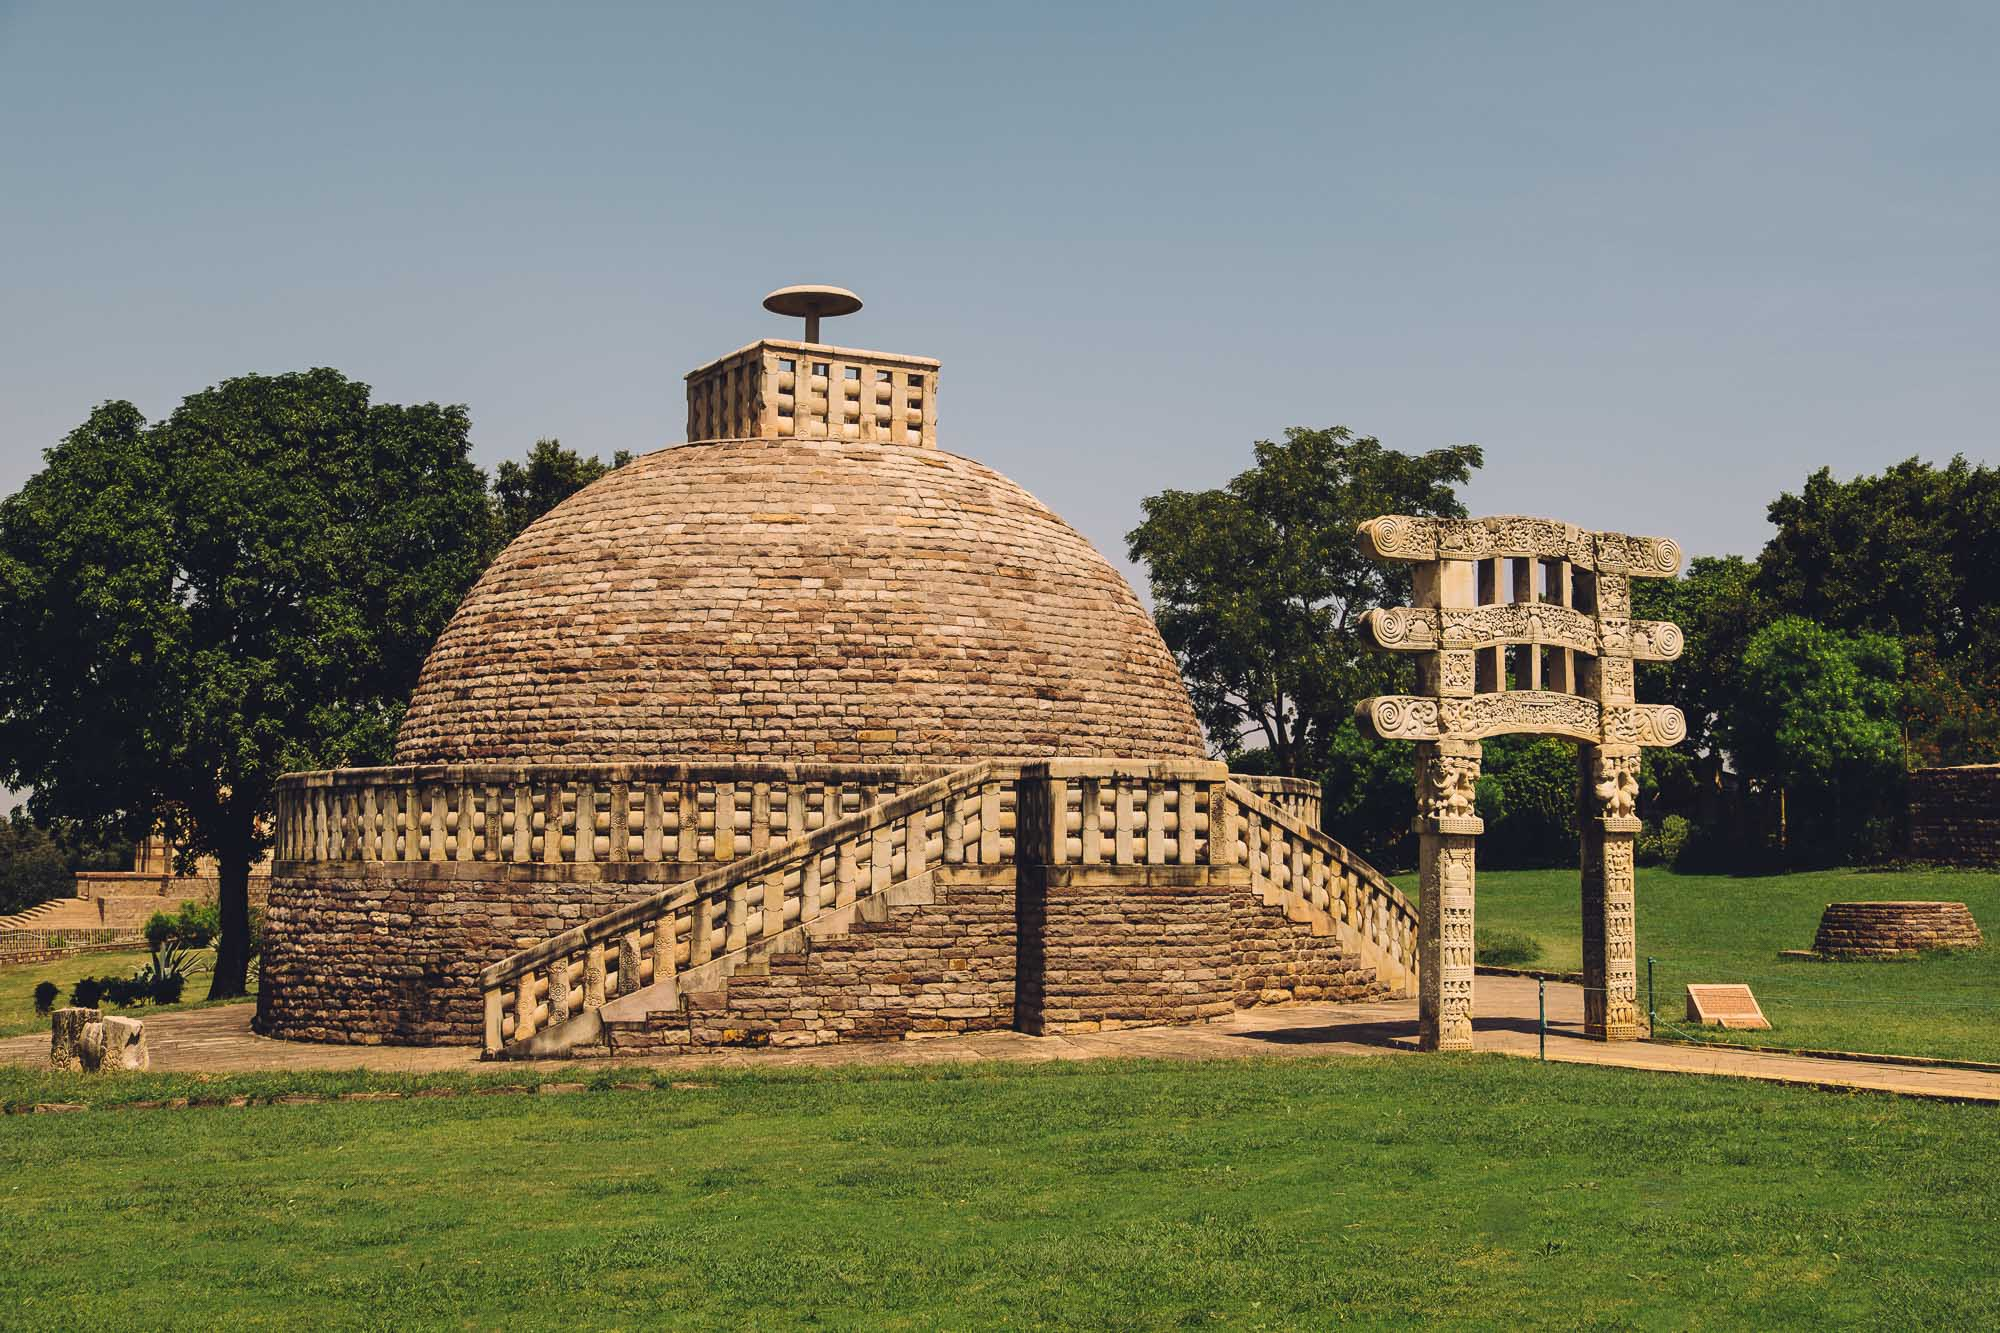 Another Stupa at Sanchi